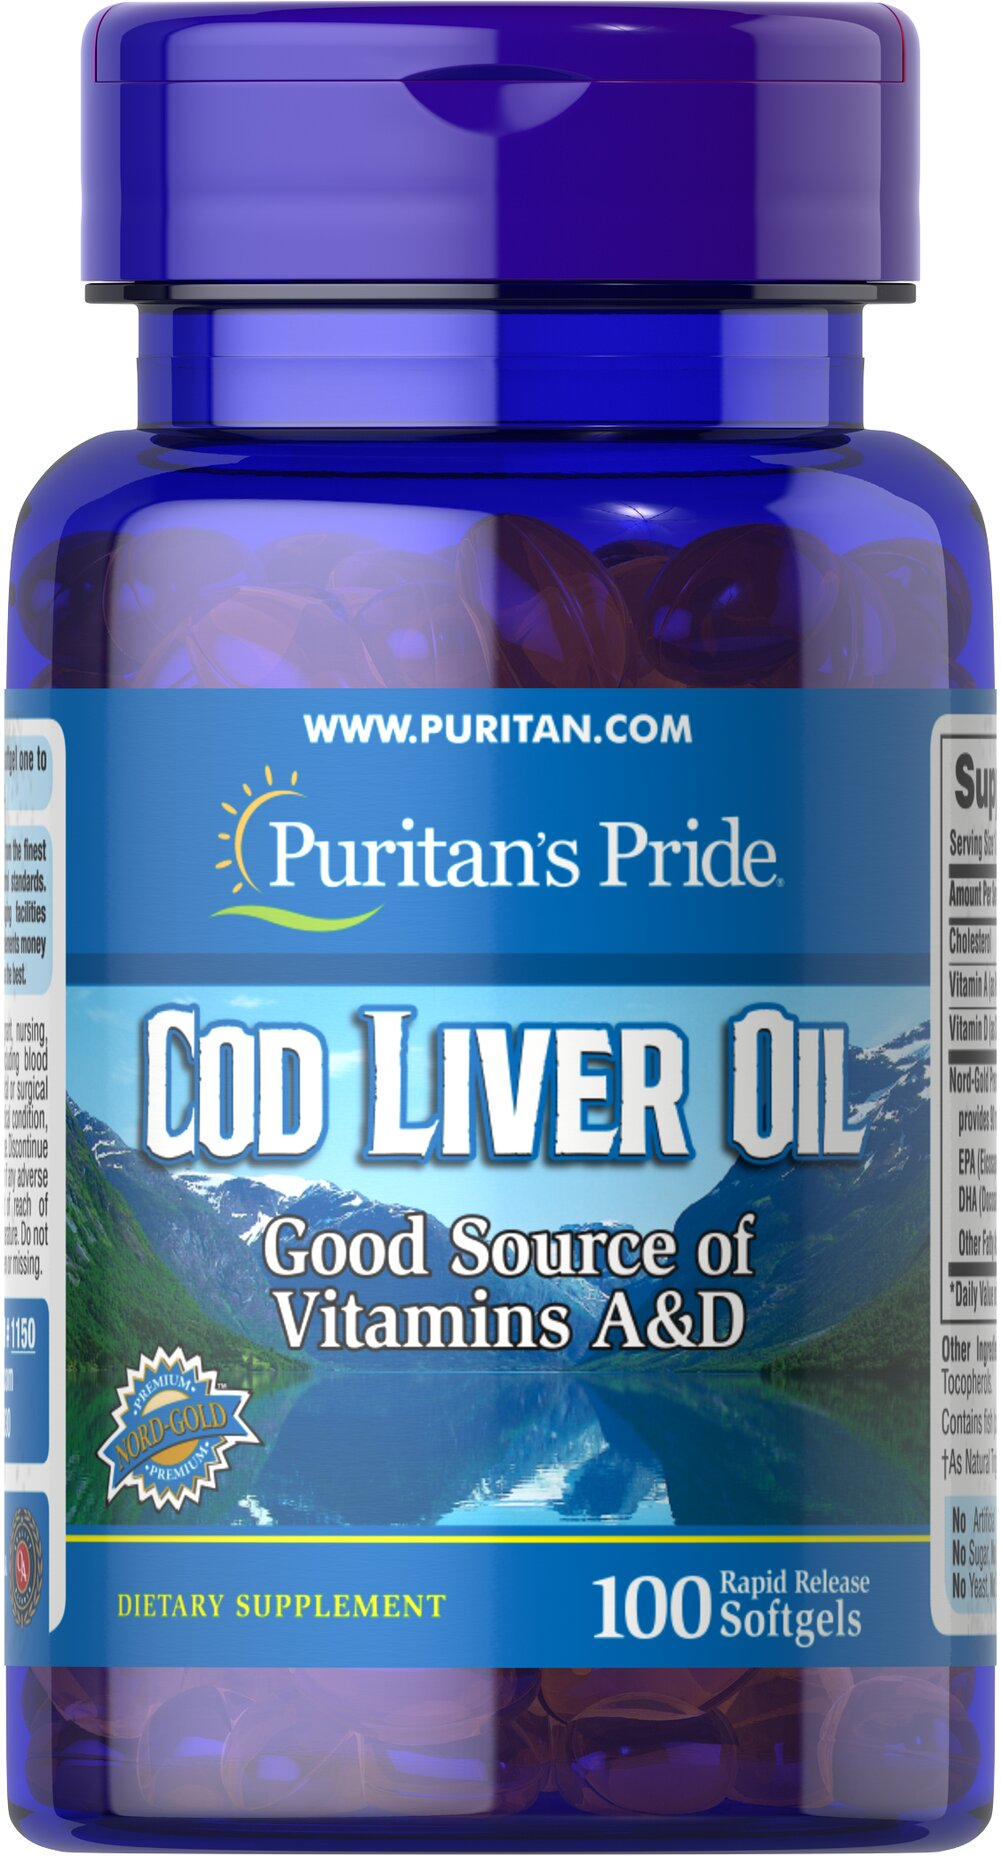 Cod Liver Oil 415 mg  100 Softgels 415 mg $6.99